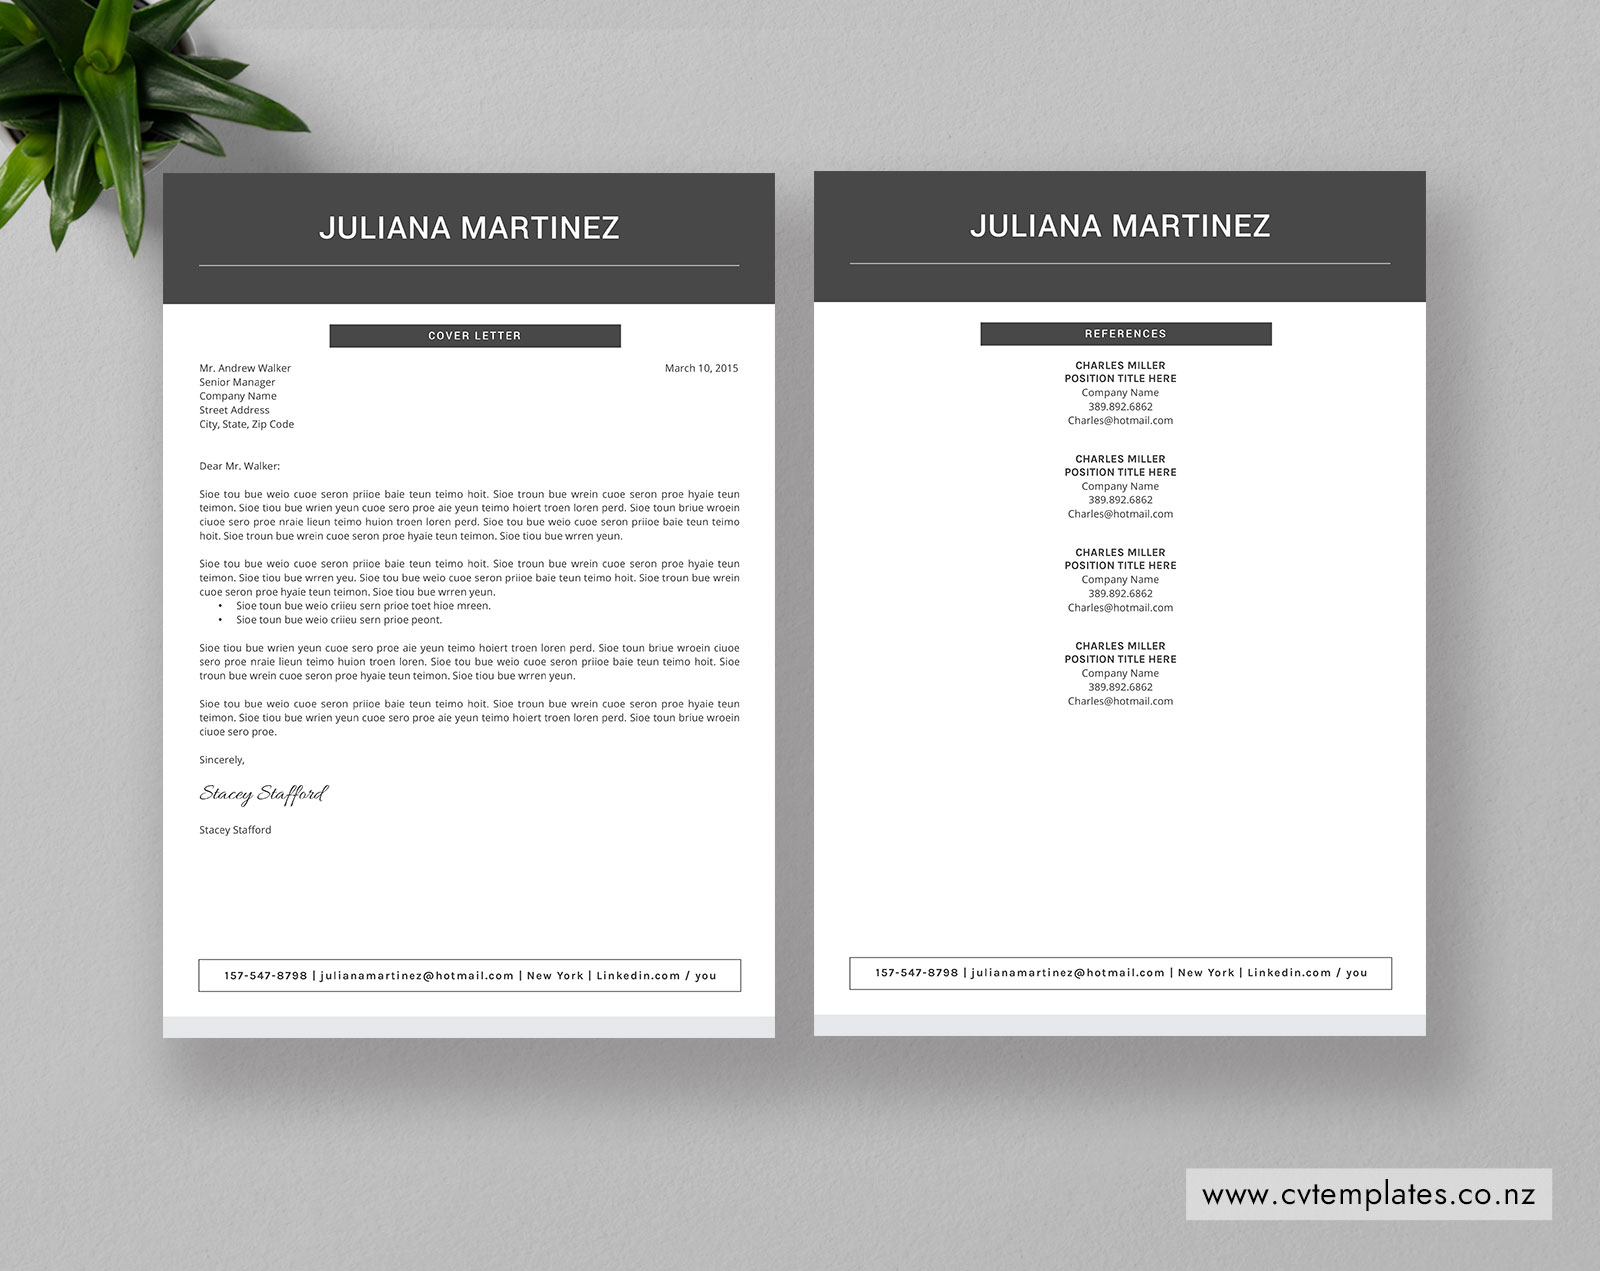 Cv Template For Ms Word Curriculum Vitae Editable Cv Template Professional Modern Cv Template Design Cover Letter References 1 2 And 3 Page Resume Template Instant Download Cvtemplates Co Nz